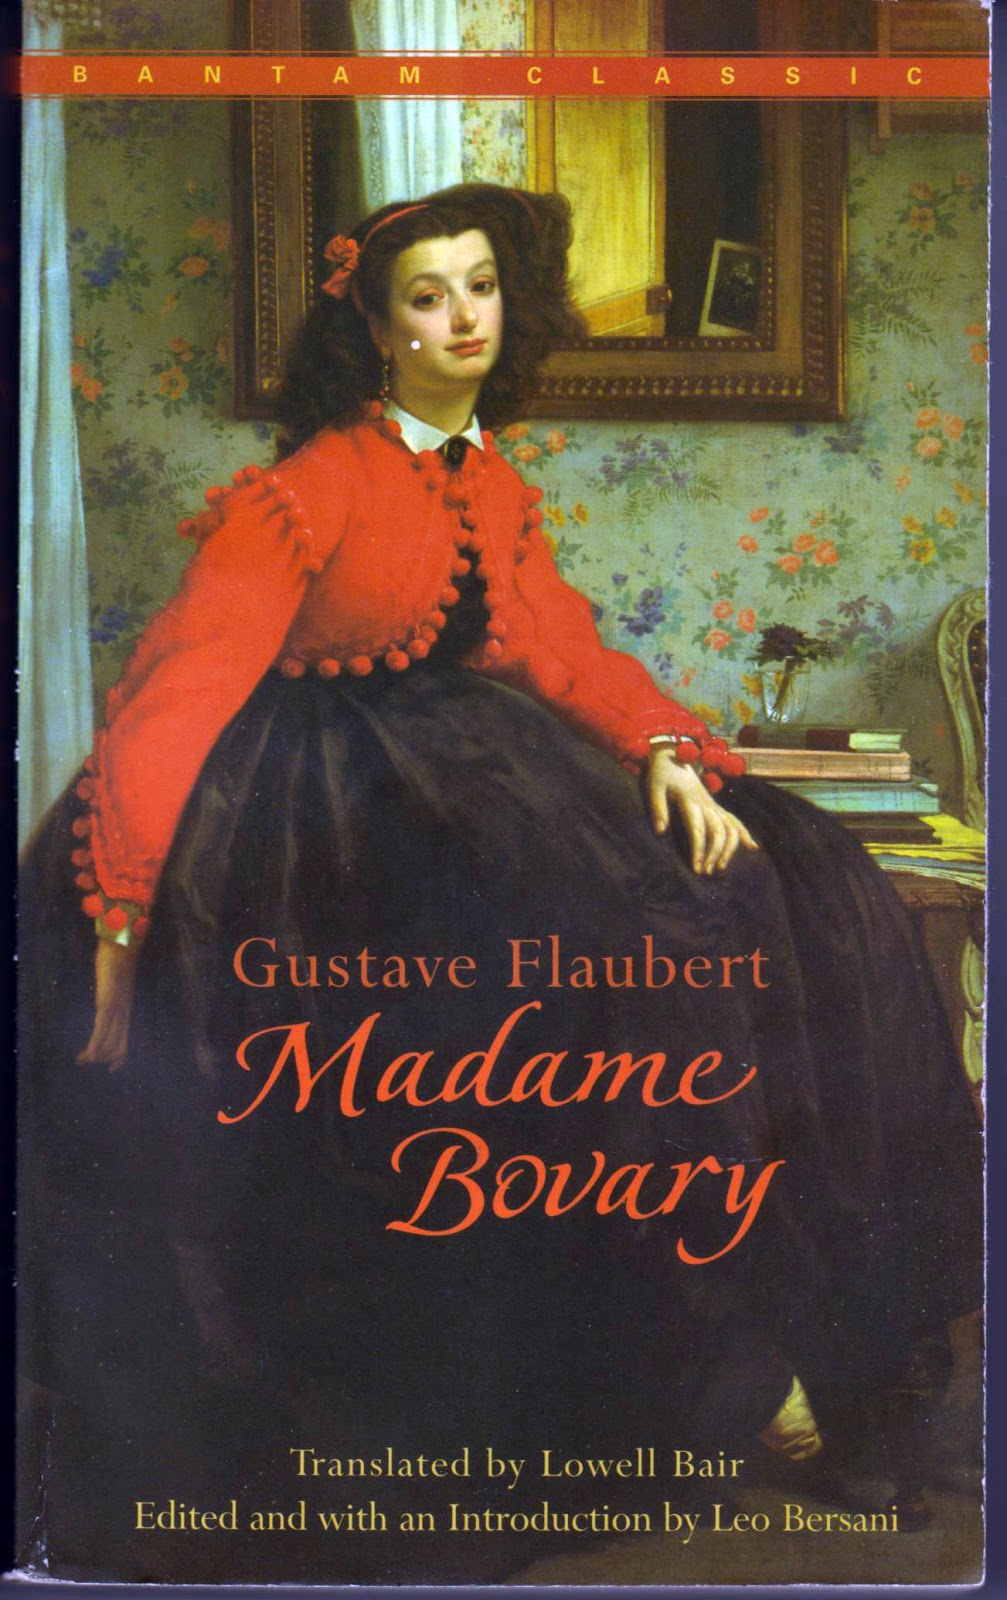 Madame bovary essays